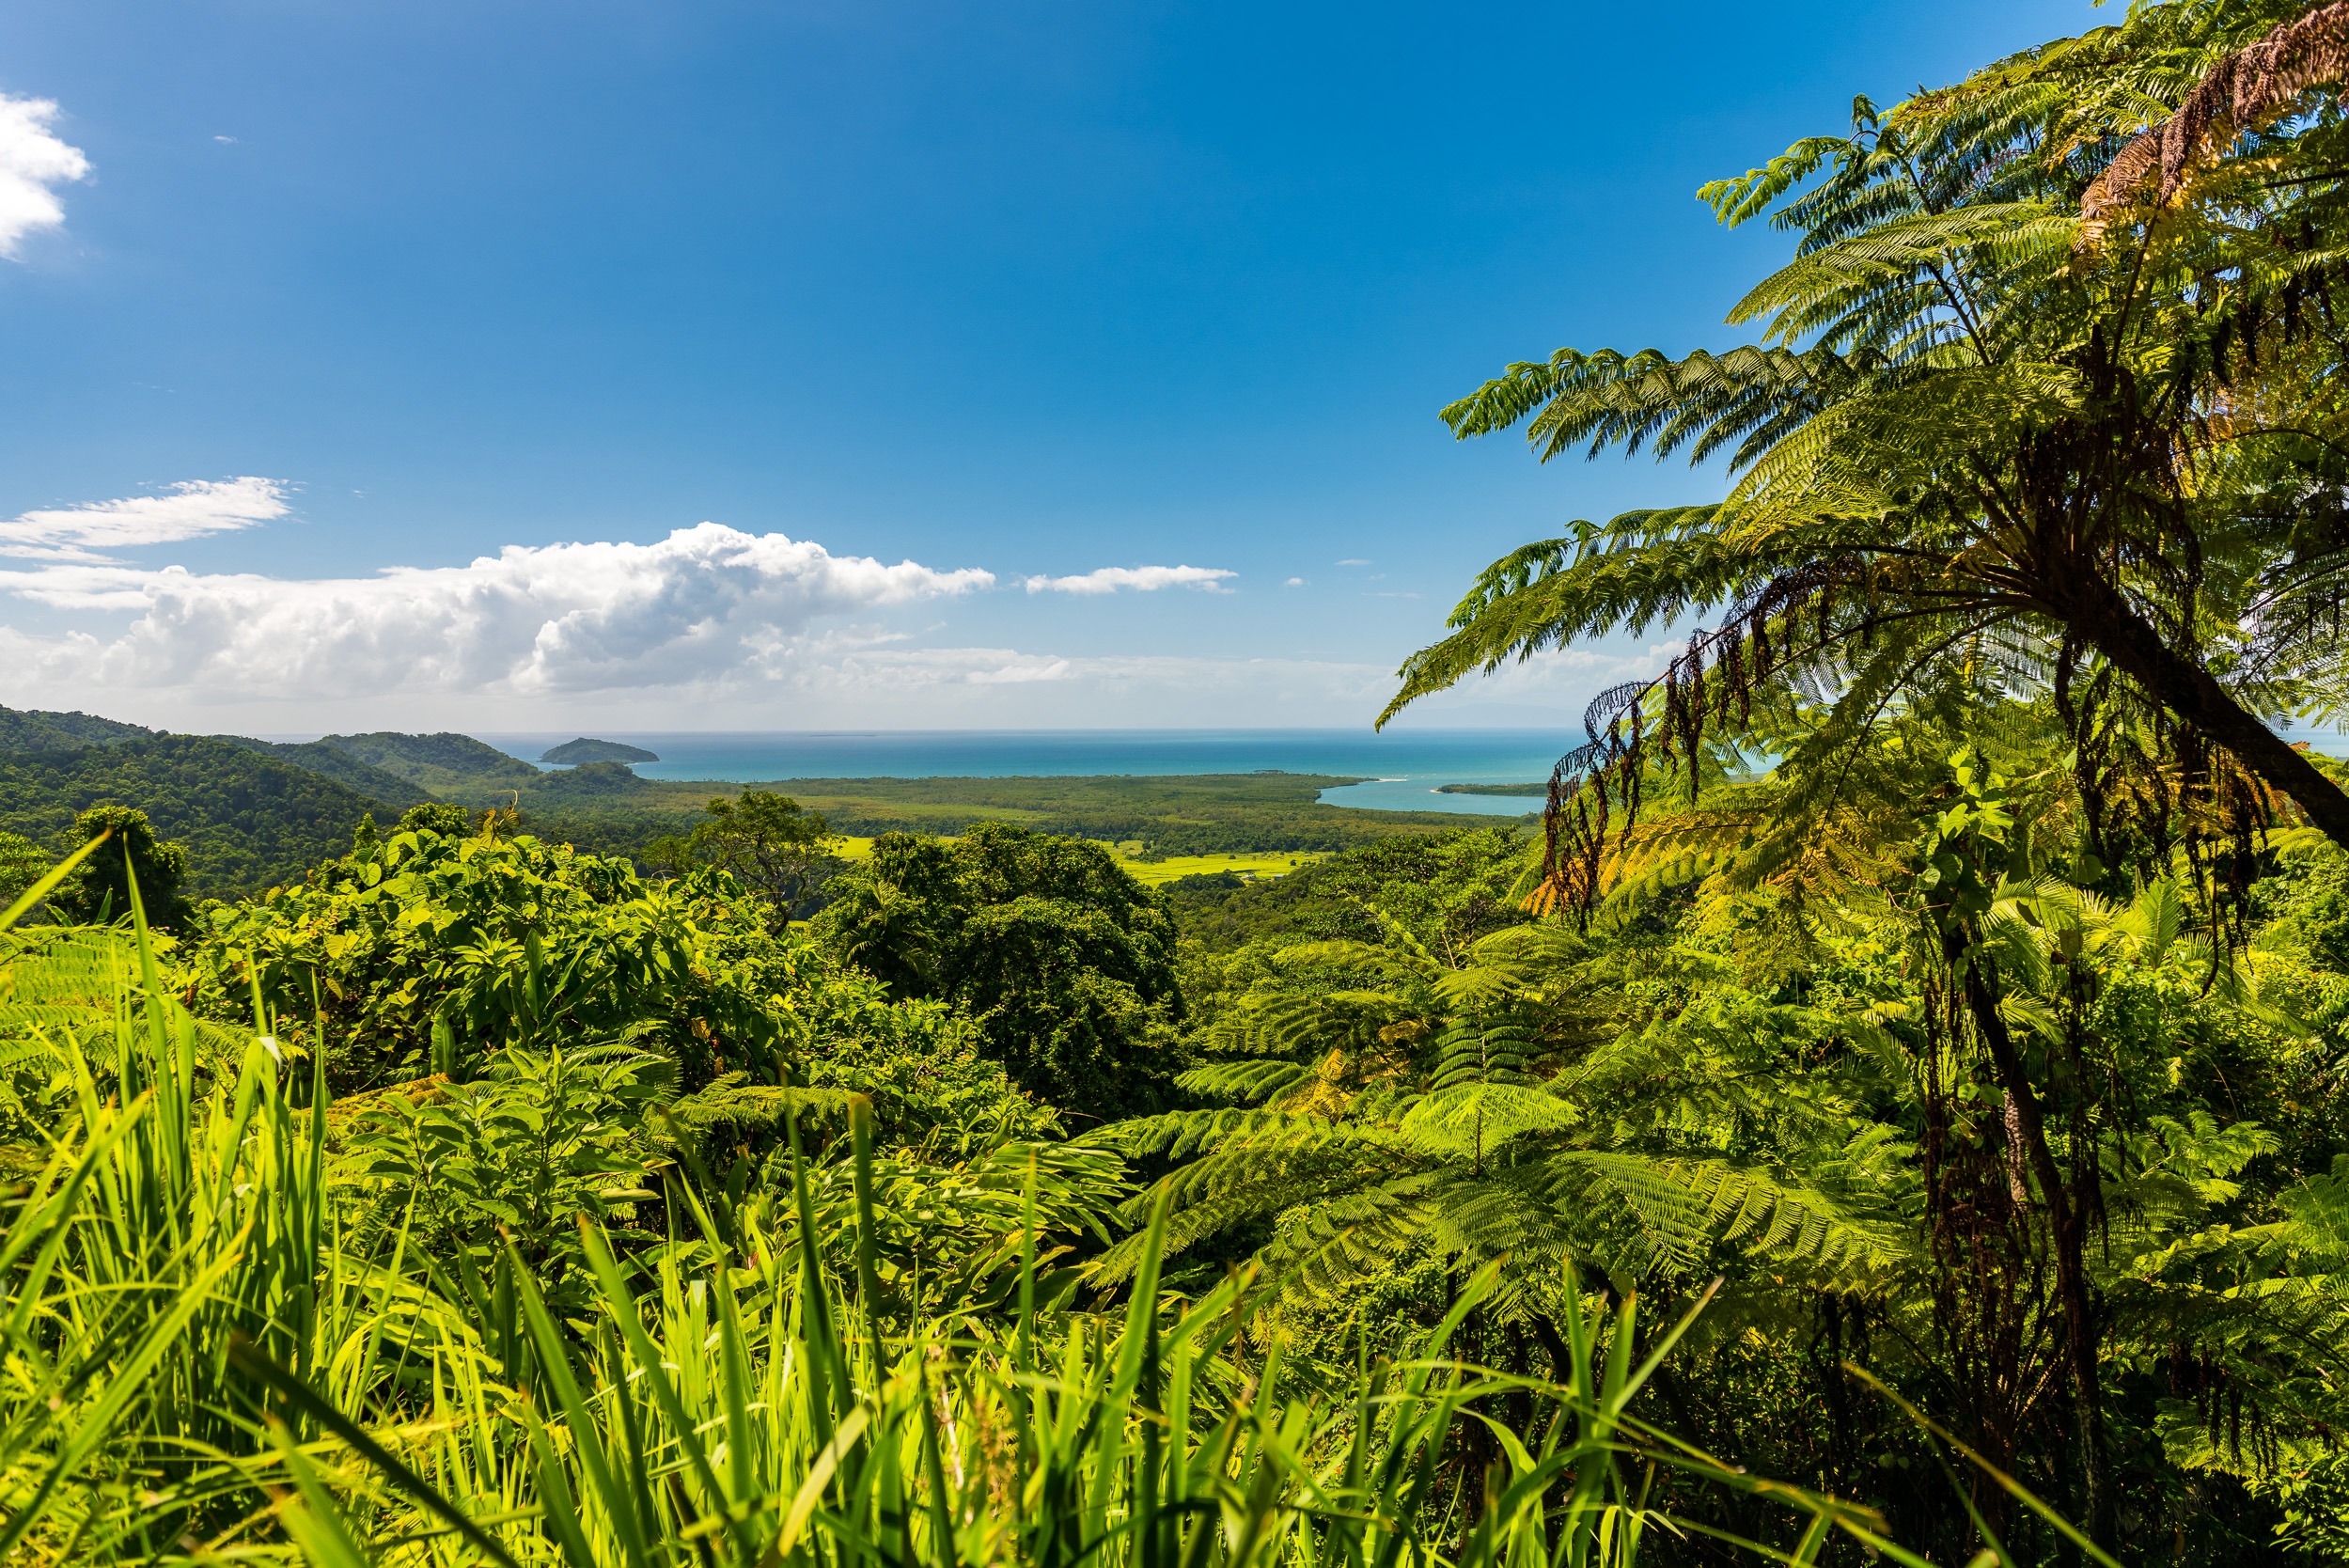 cape-tribulation-australia-2.jpg